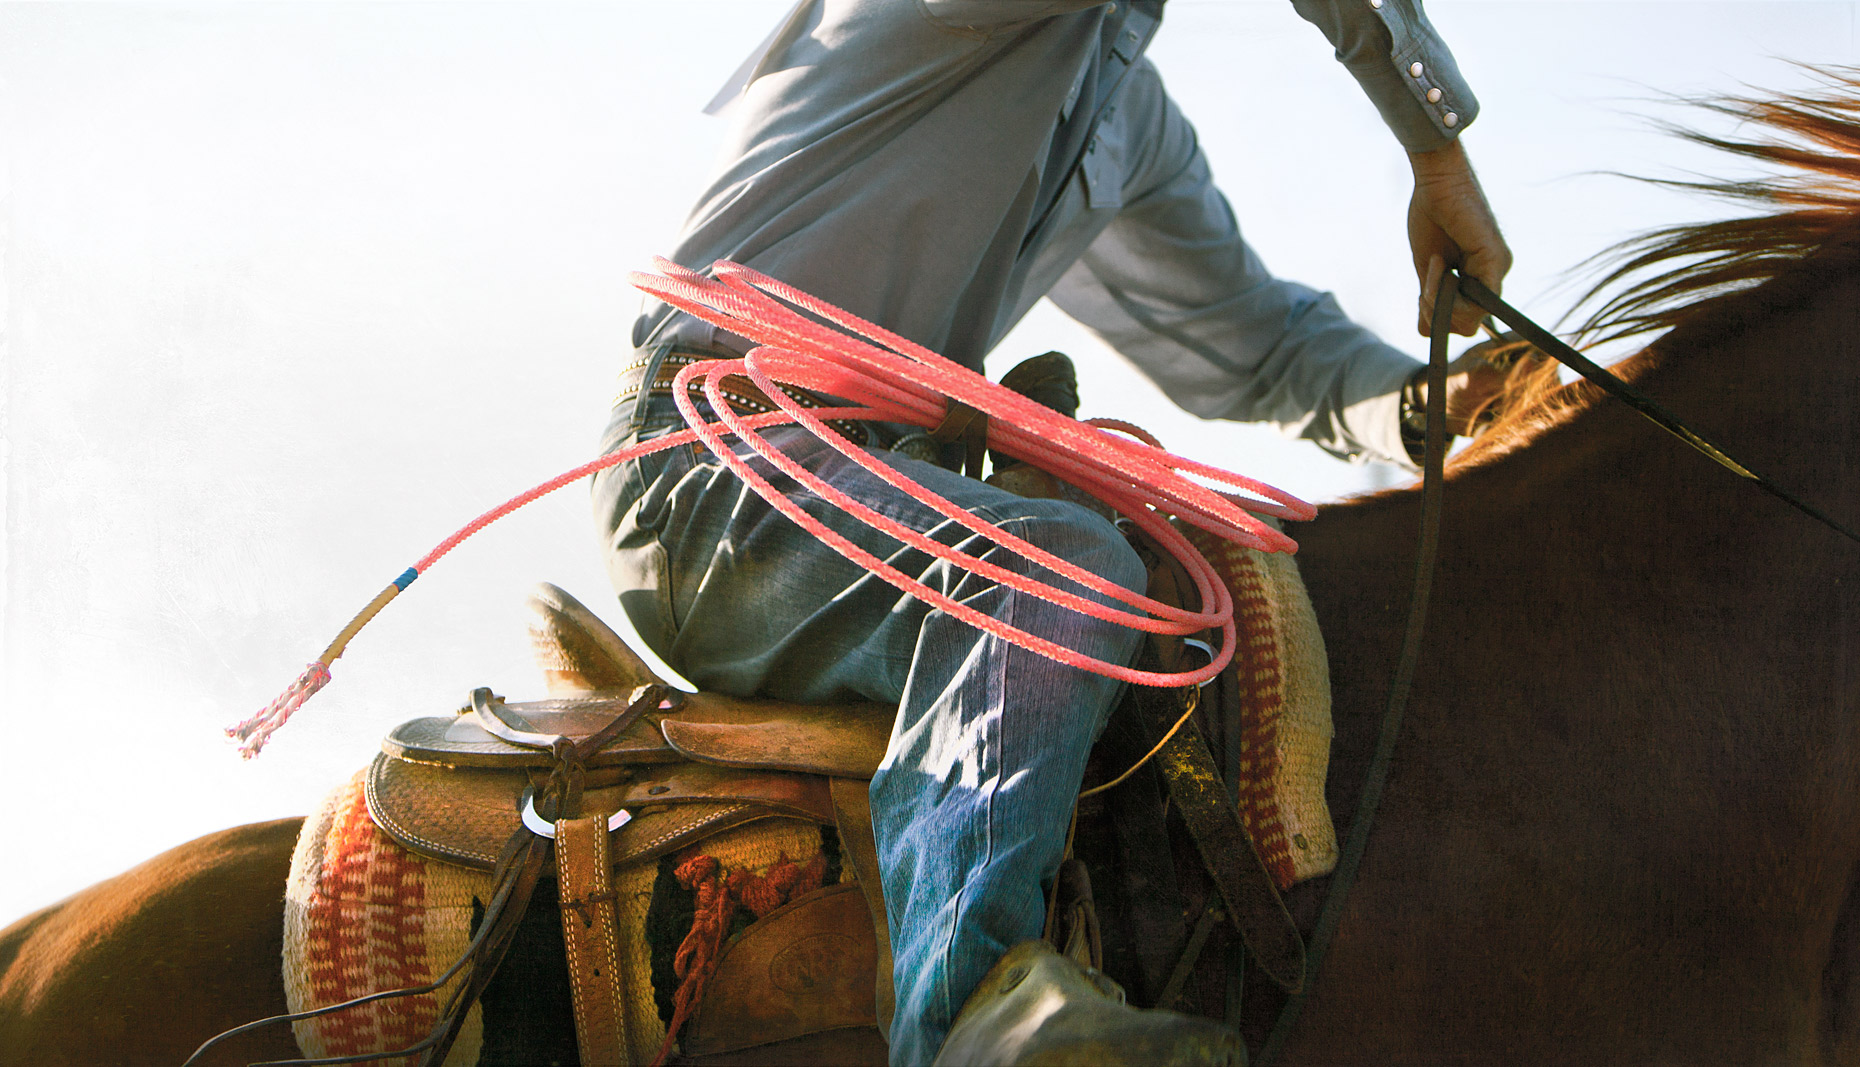 Detail of a cowboy riding his horse